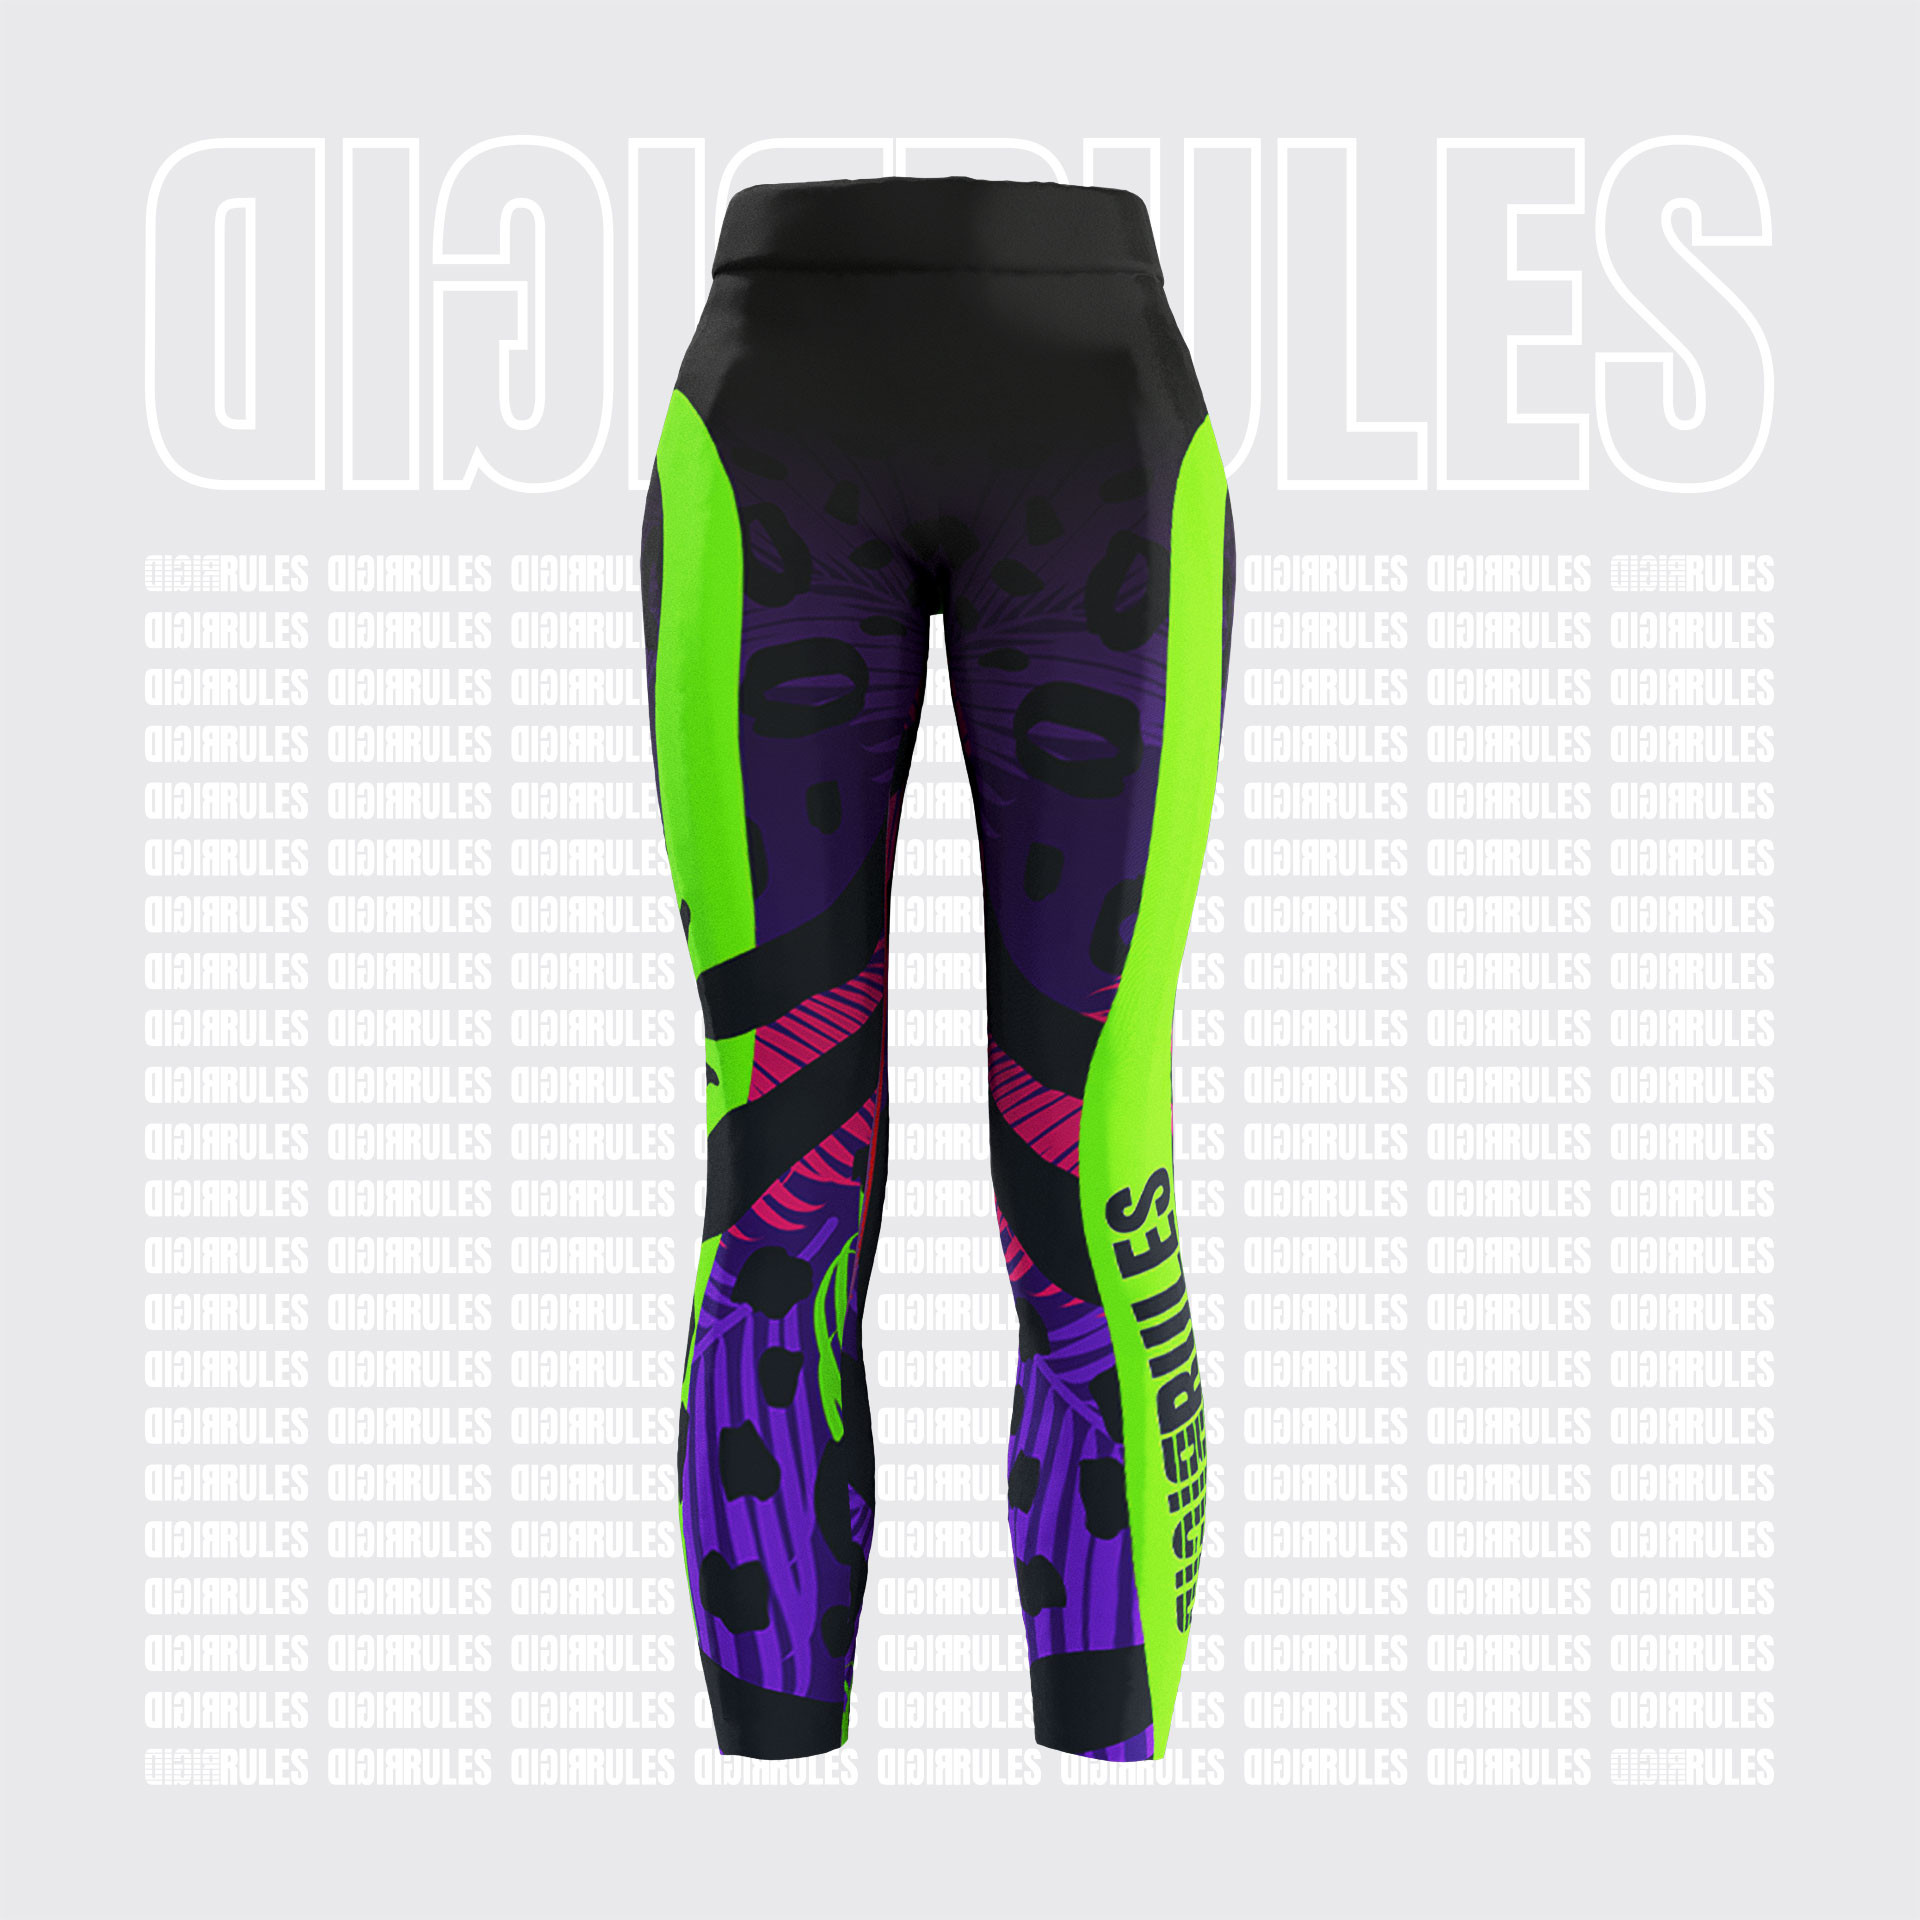 Polish manufacturer of high quality sublimed sportswear: T-shirts, tops, leggings, hoodies, sweatpants, shorts and others.